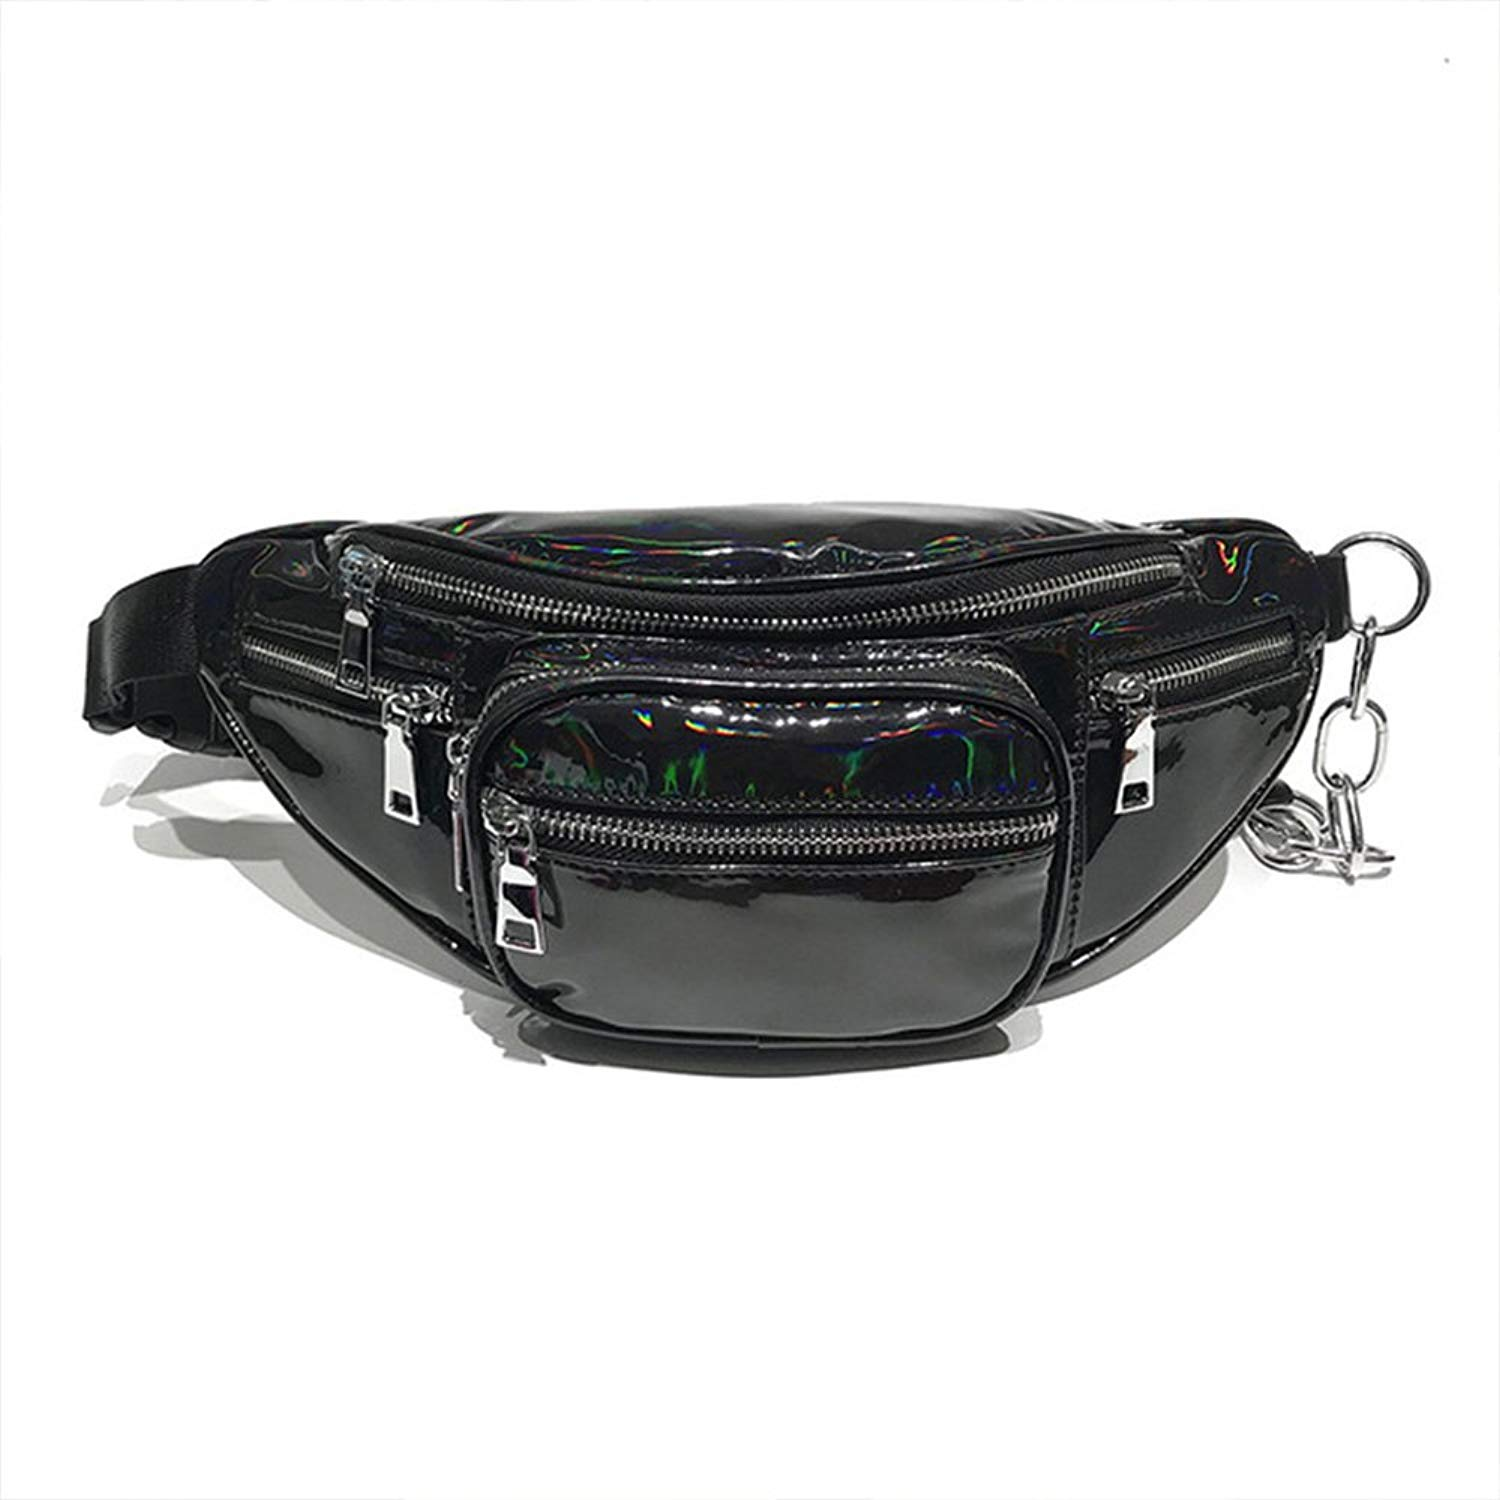 Fanny Pack PU Leather Hip Waist Pouch Festival Rave Holographic Waist Bags Travel Hiking GYM